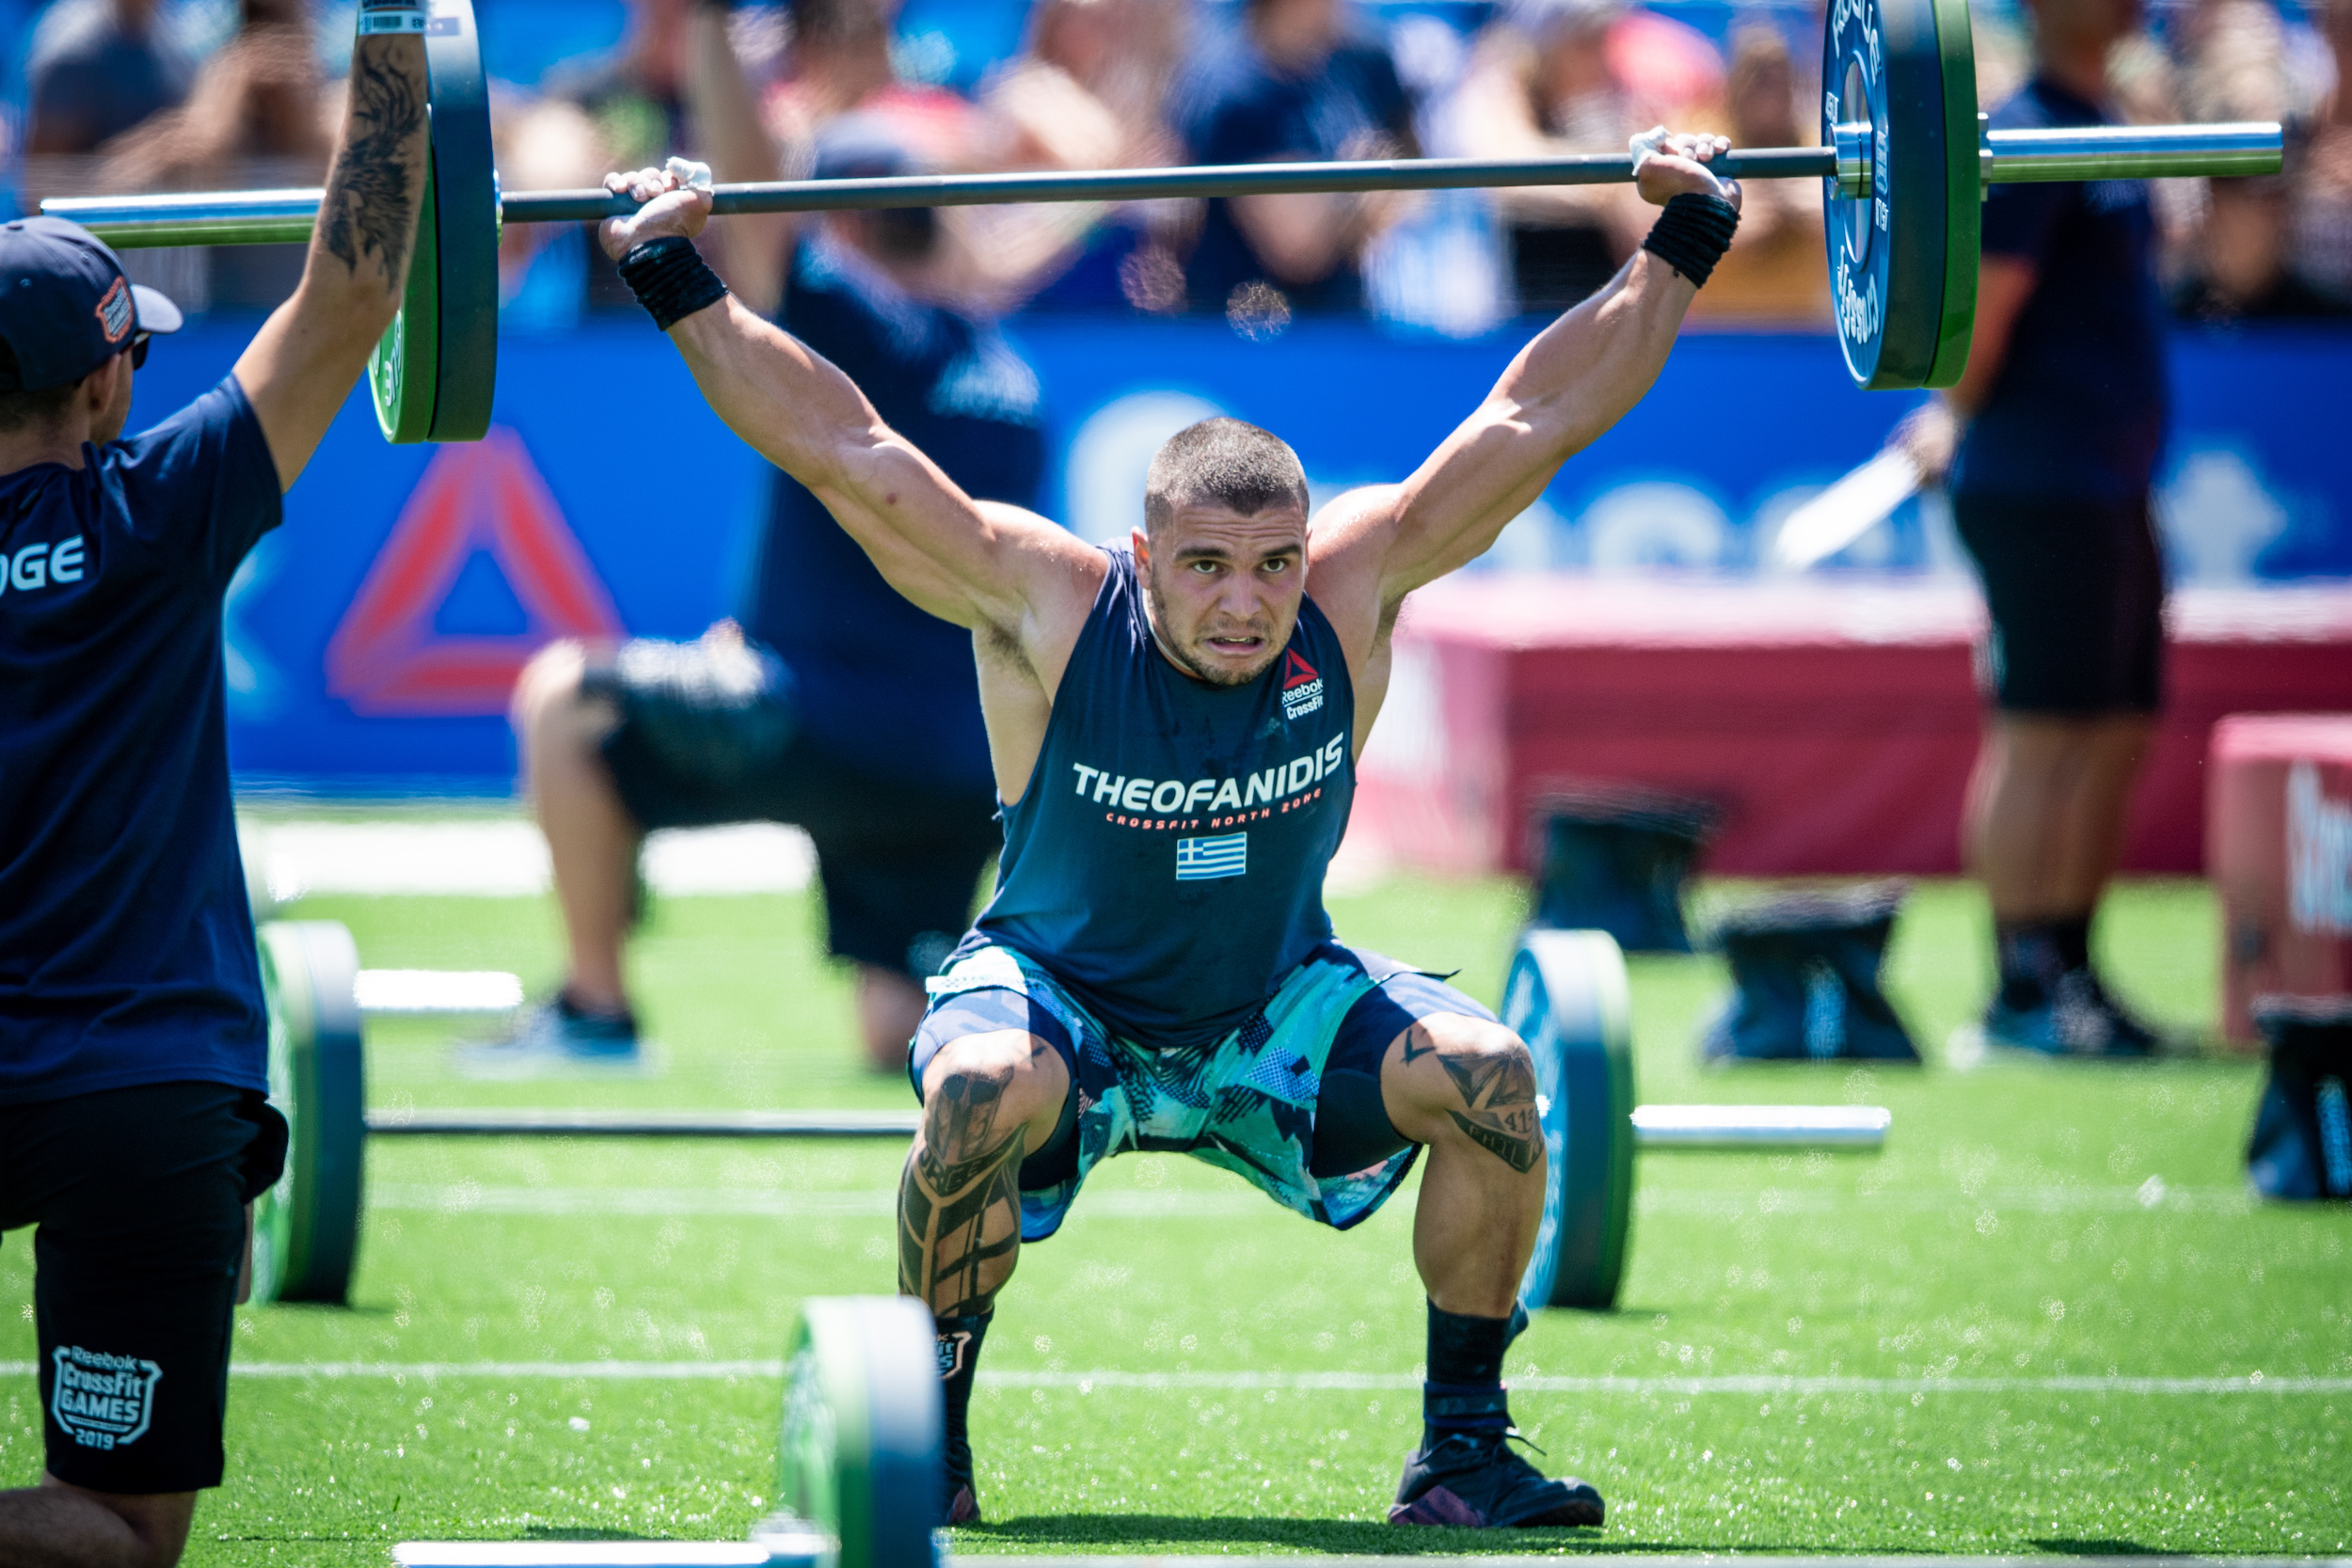 Lefteris Theofanidis is in breach of the CrossFit Drug Testing Policy